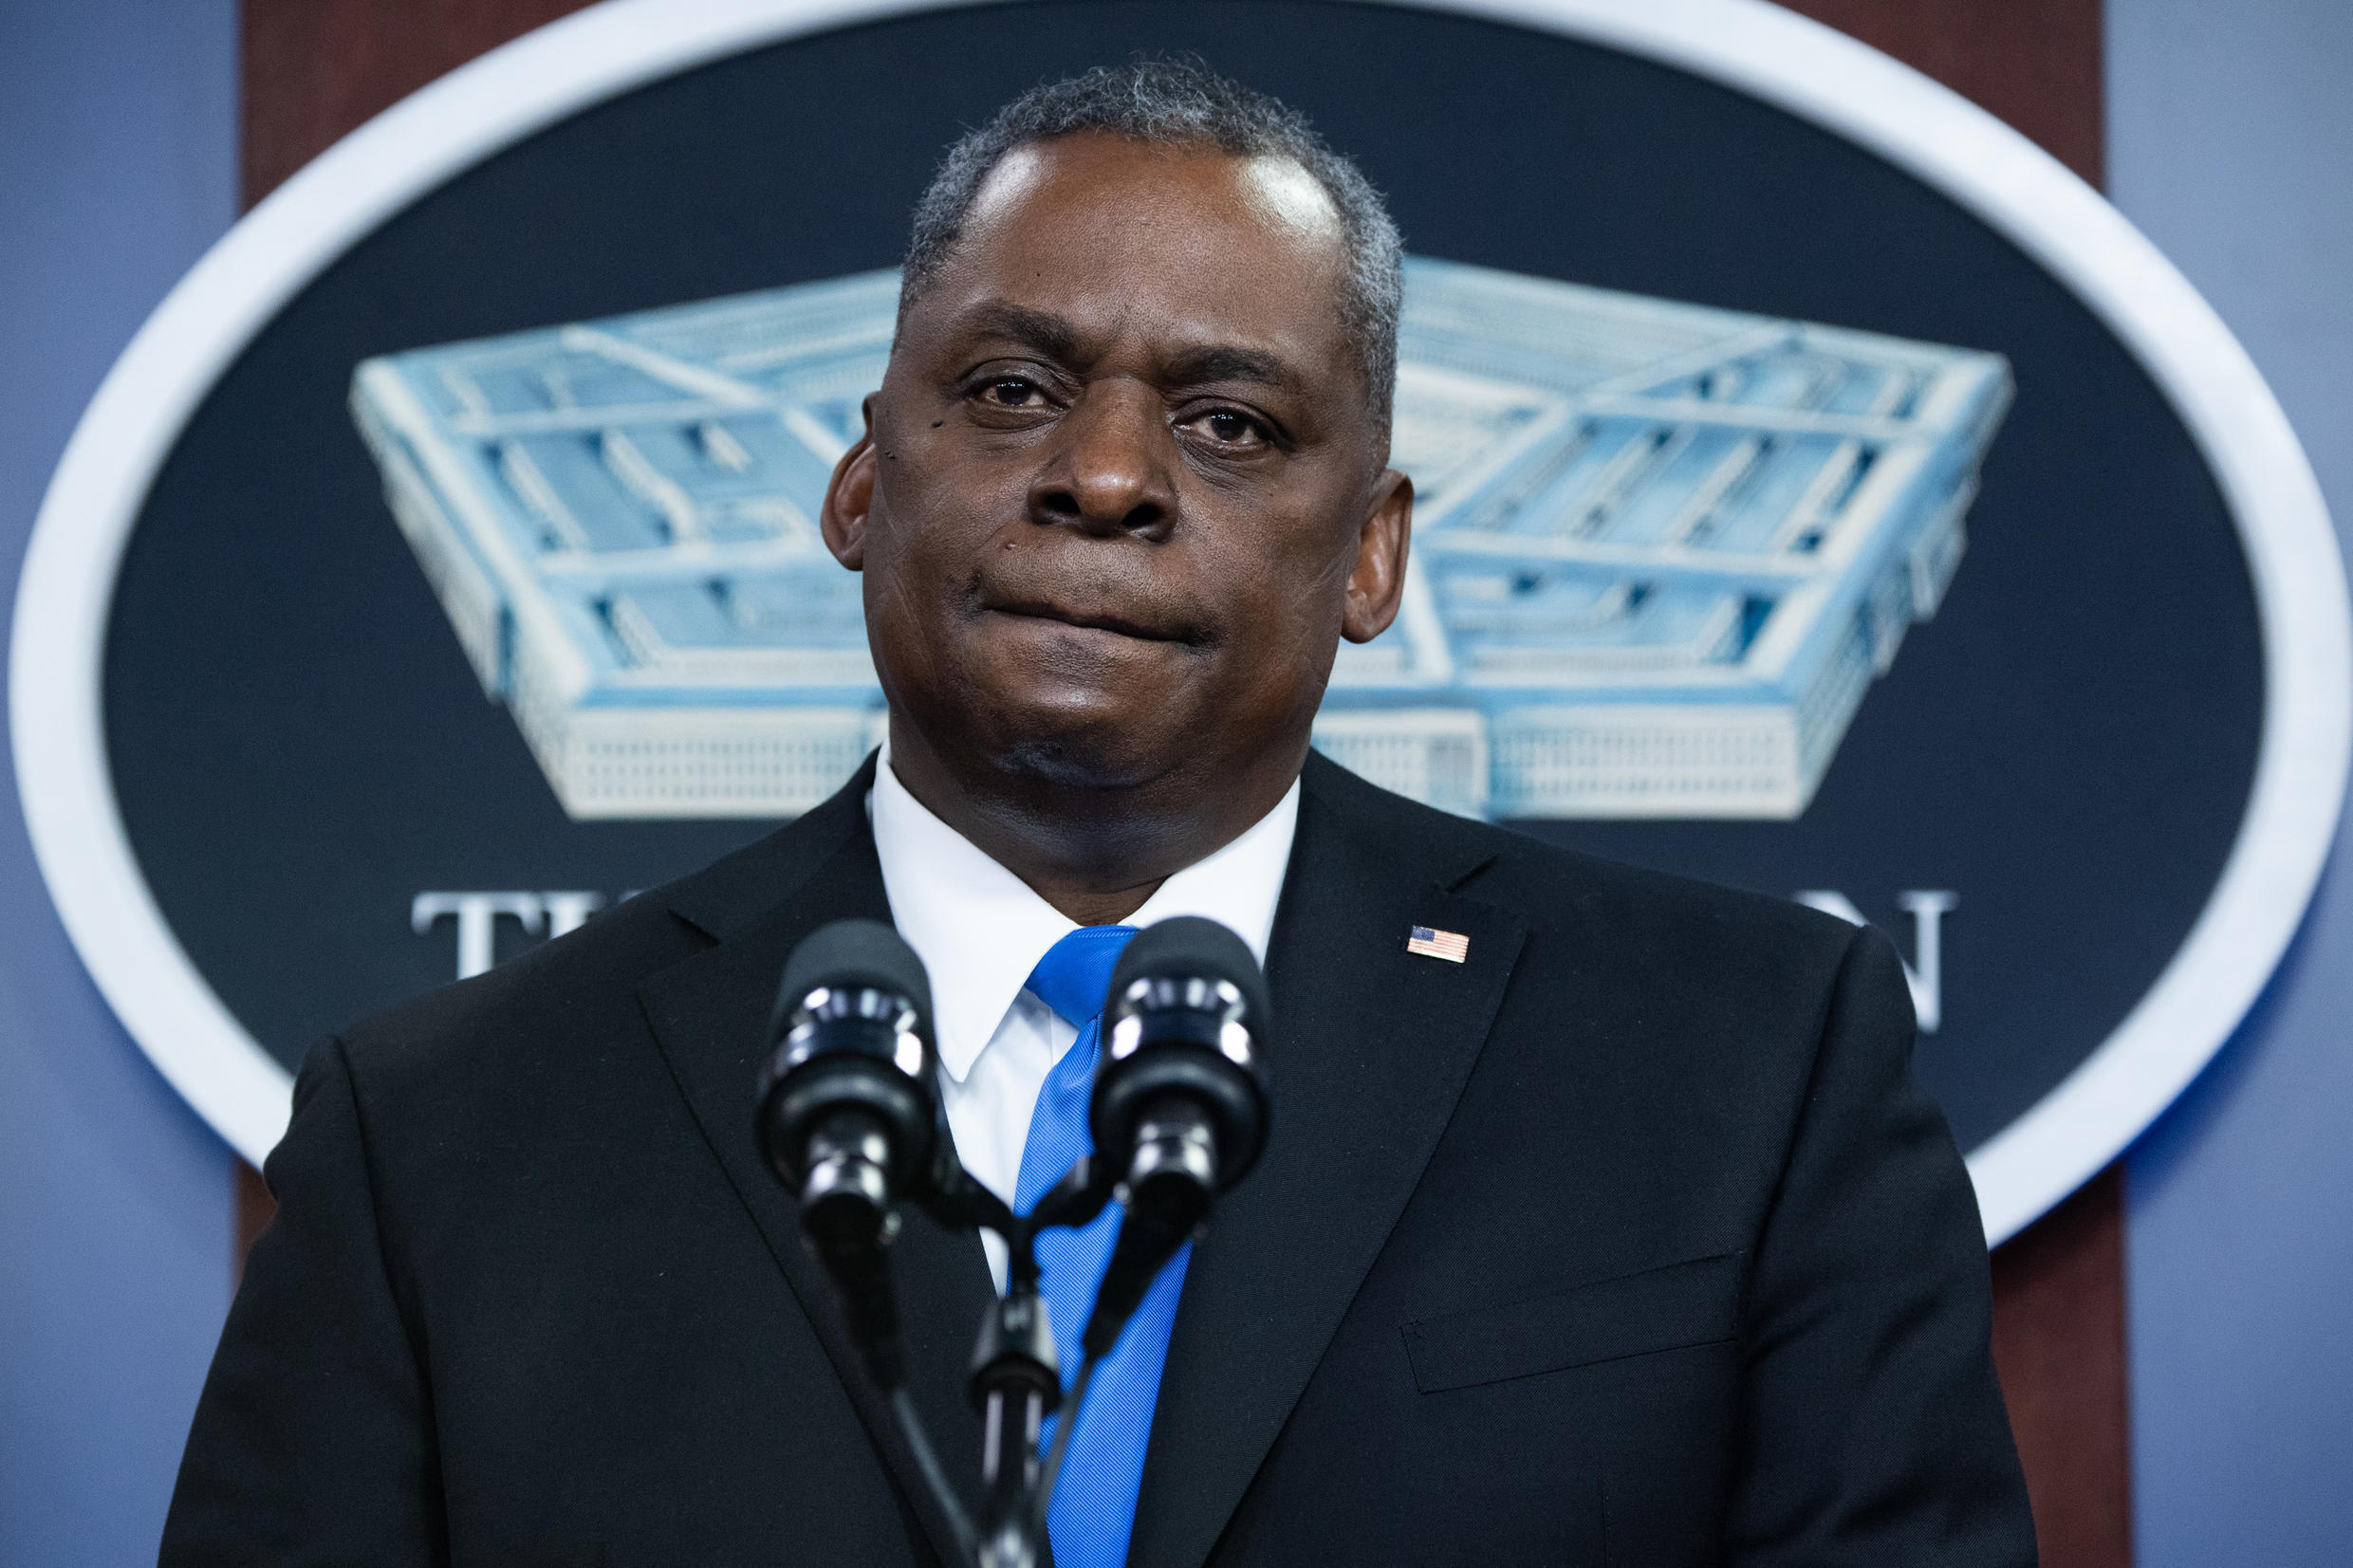 法广存档图片 - Image d'archive RFI : Pentagon chief Lloyd Austin speaking at a news conference this month